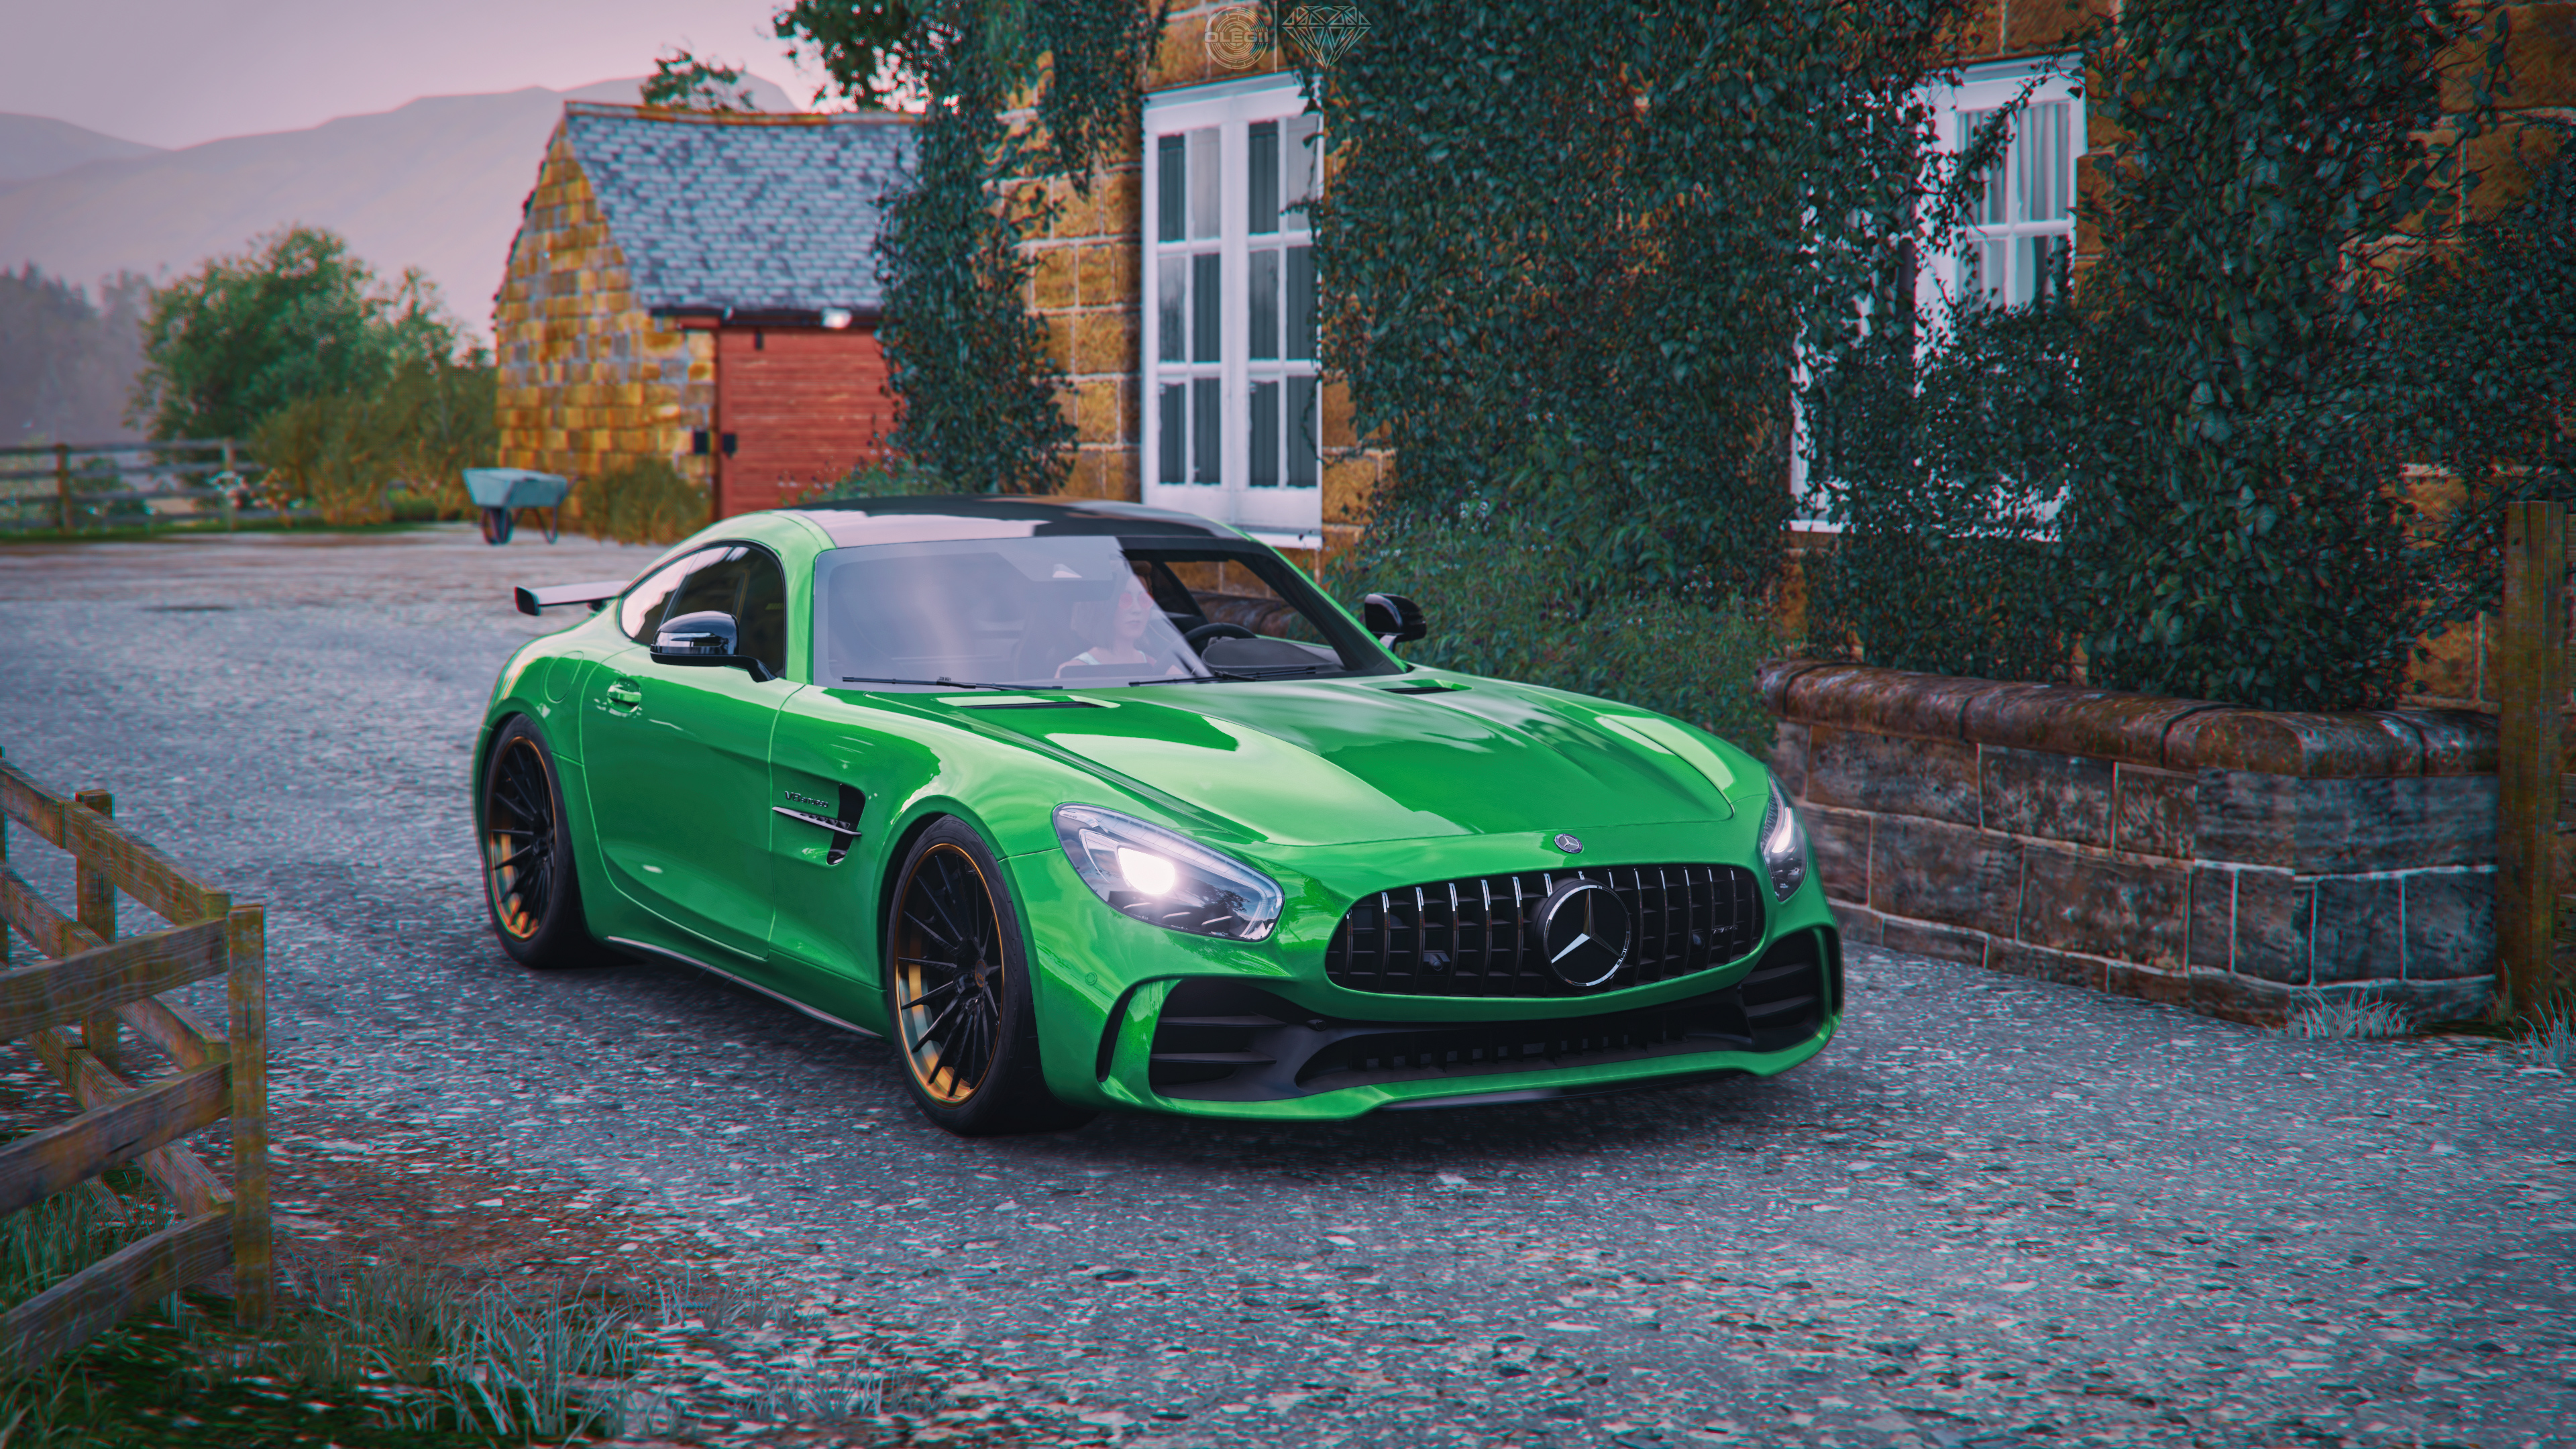 Wallpaper 4k Forza Horizon 4 Mercedes Amg Gt R 4k 2019 Games